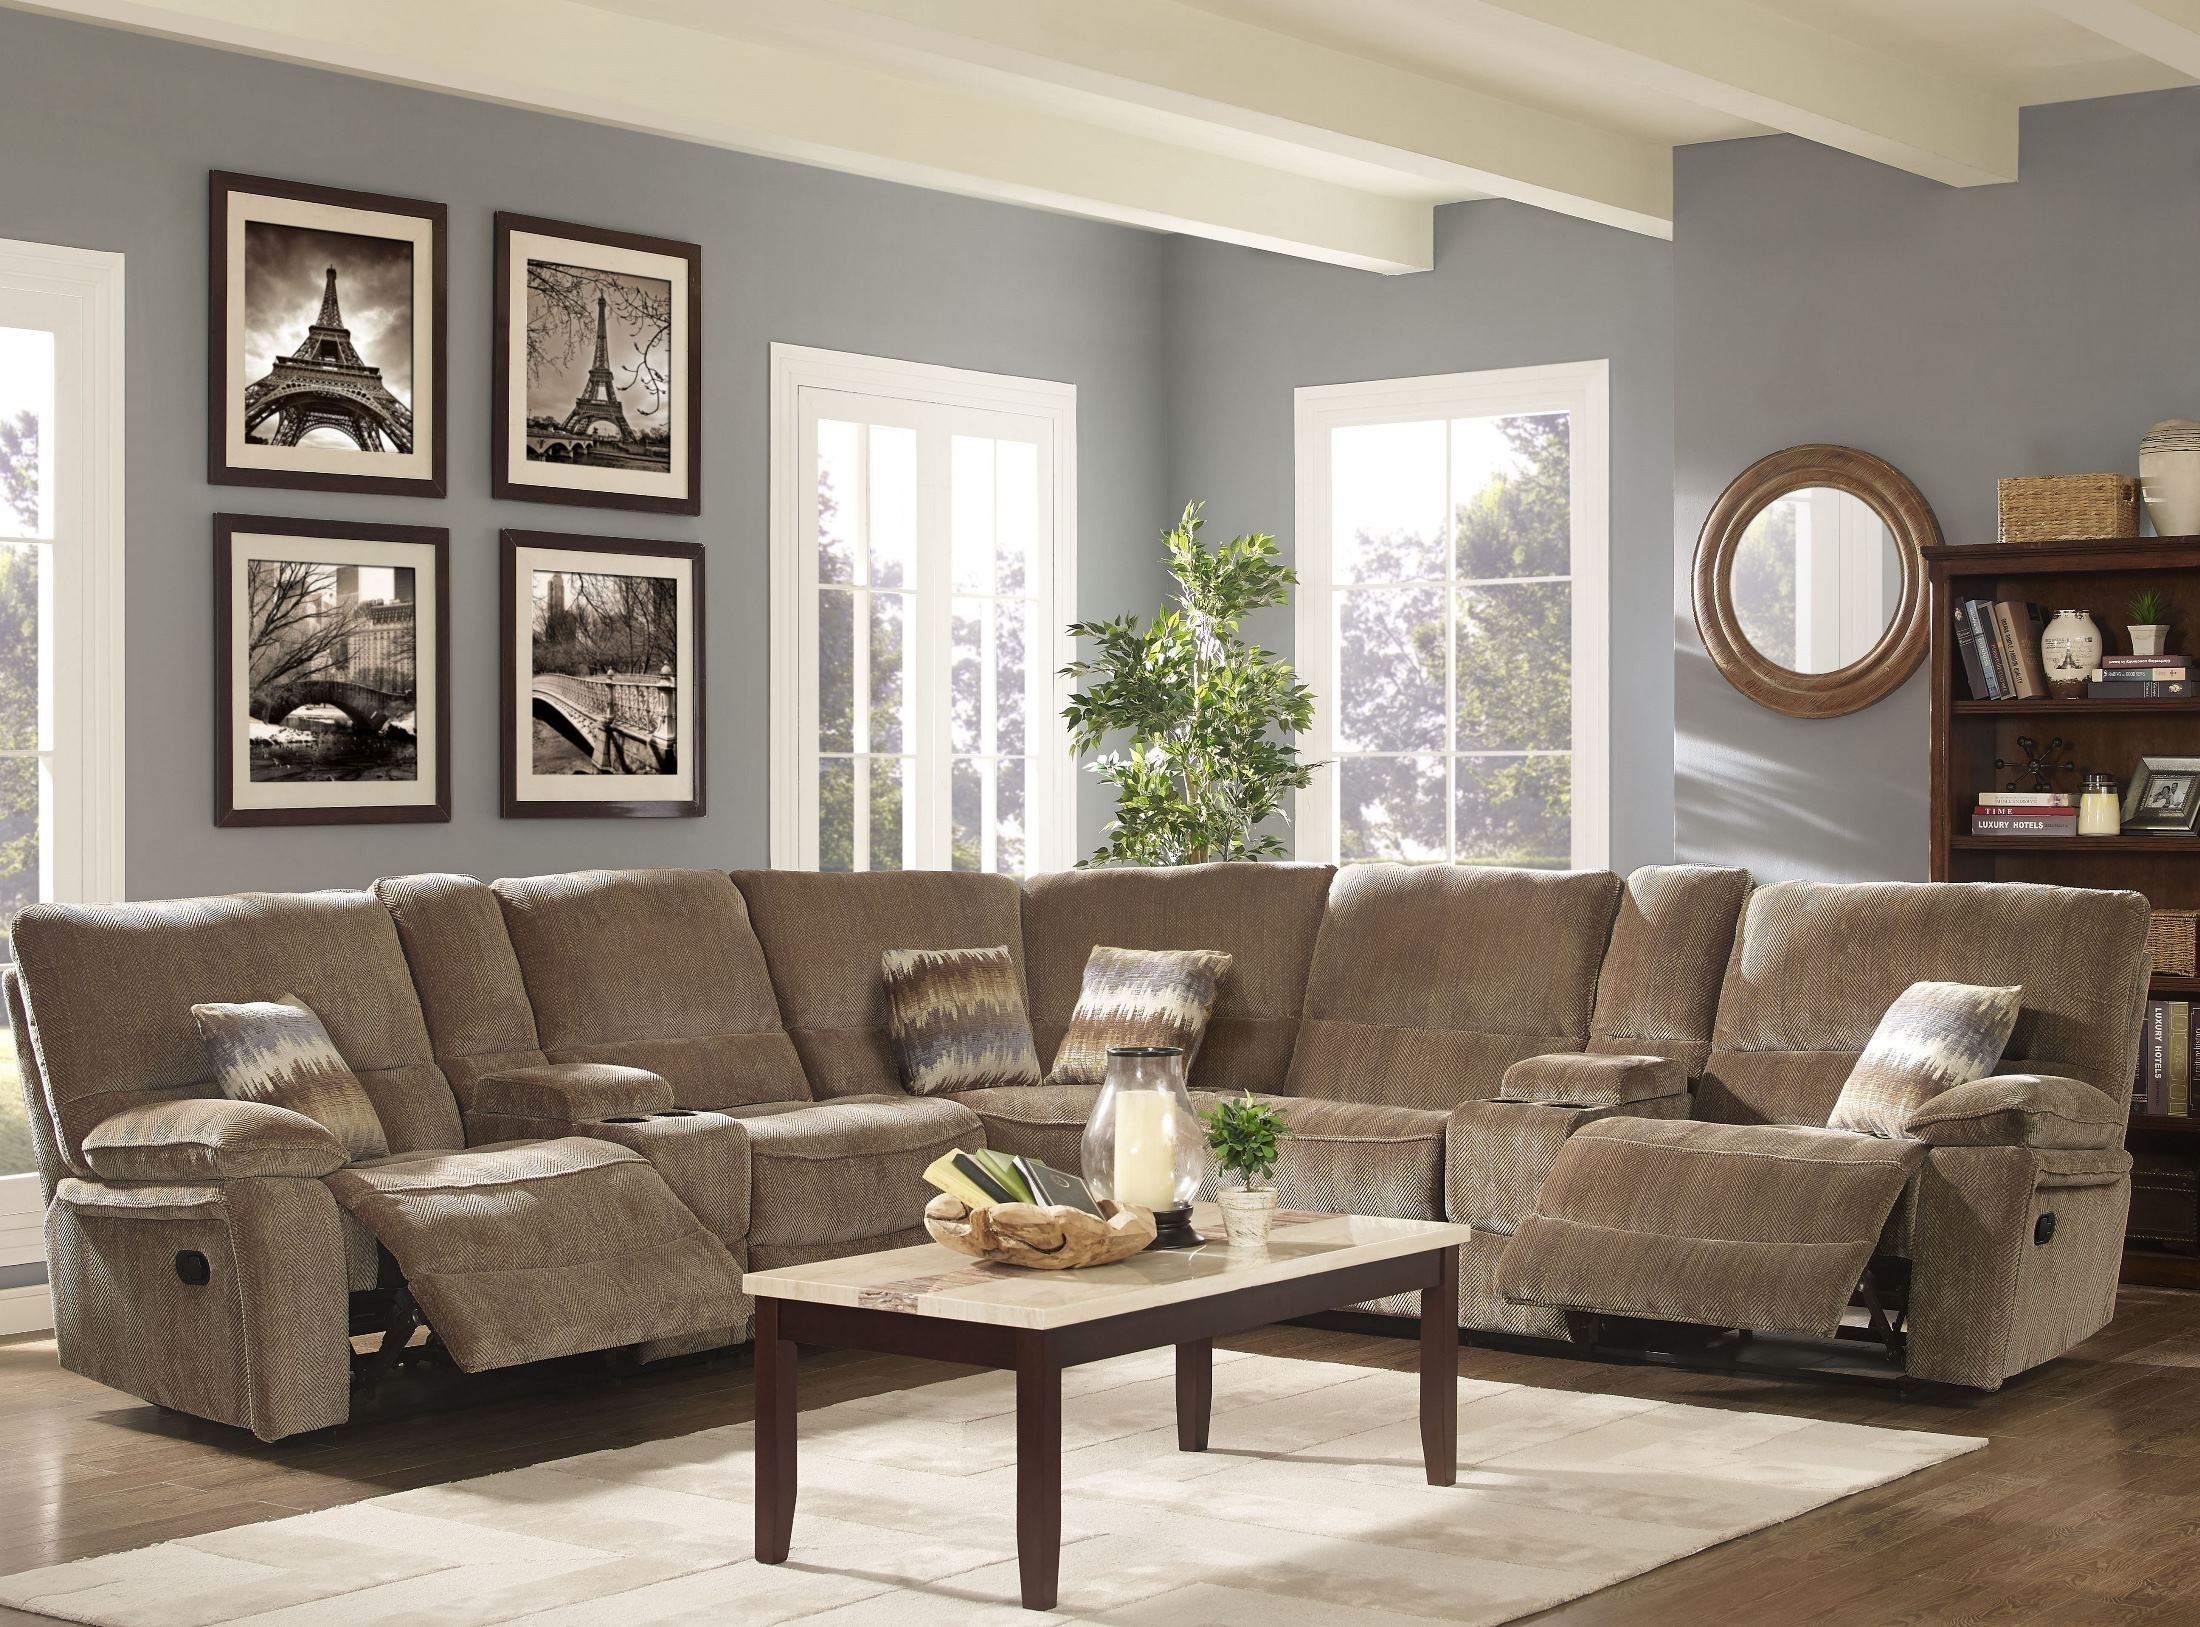 Ranger Bravo Sandalwood Power Reclining Sectional From New Classic for Turdur 2 Piece Sectionals With Laf Loveseat (Image 24 of 30)